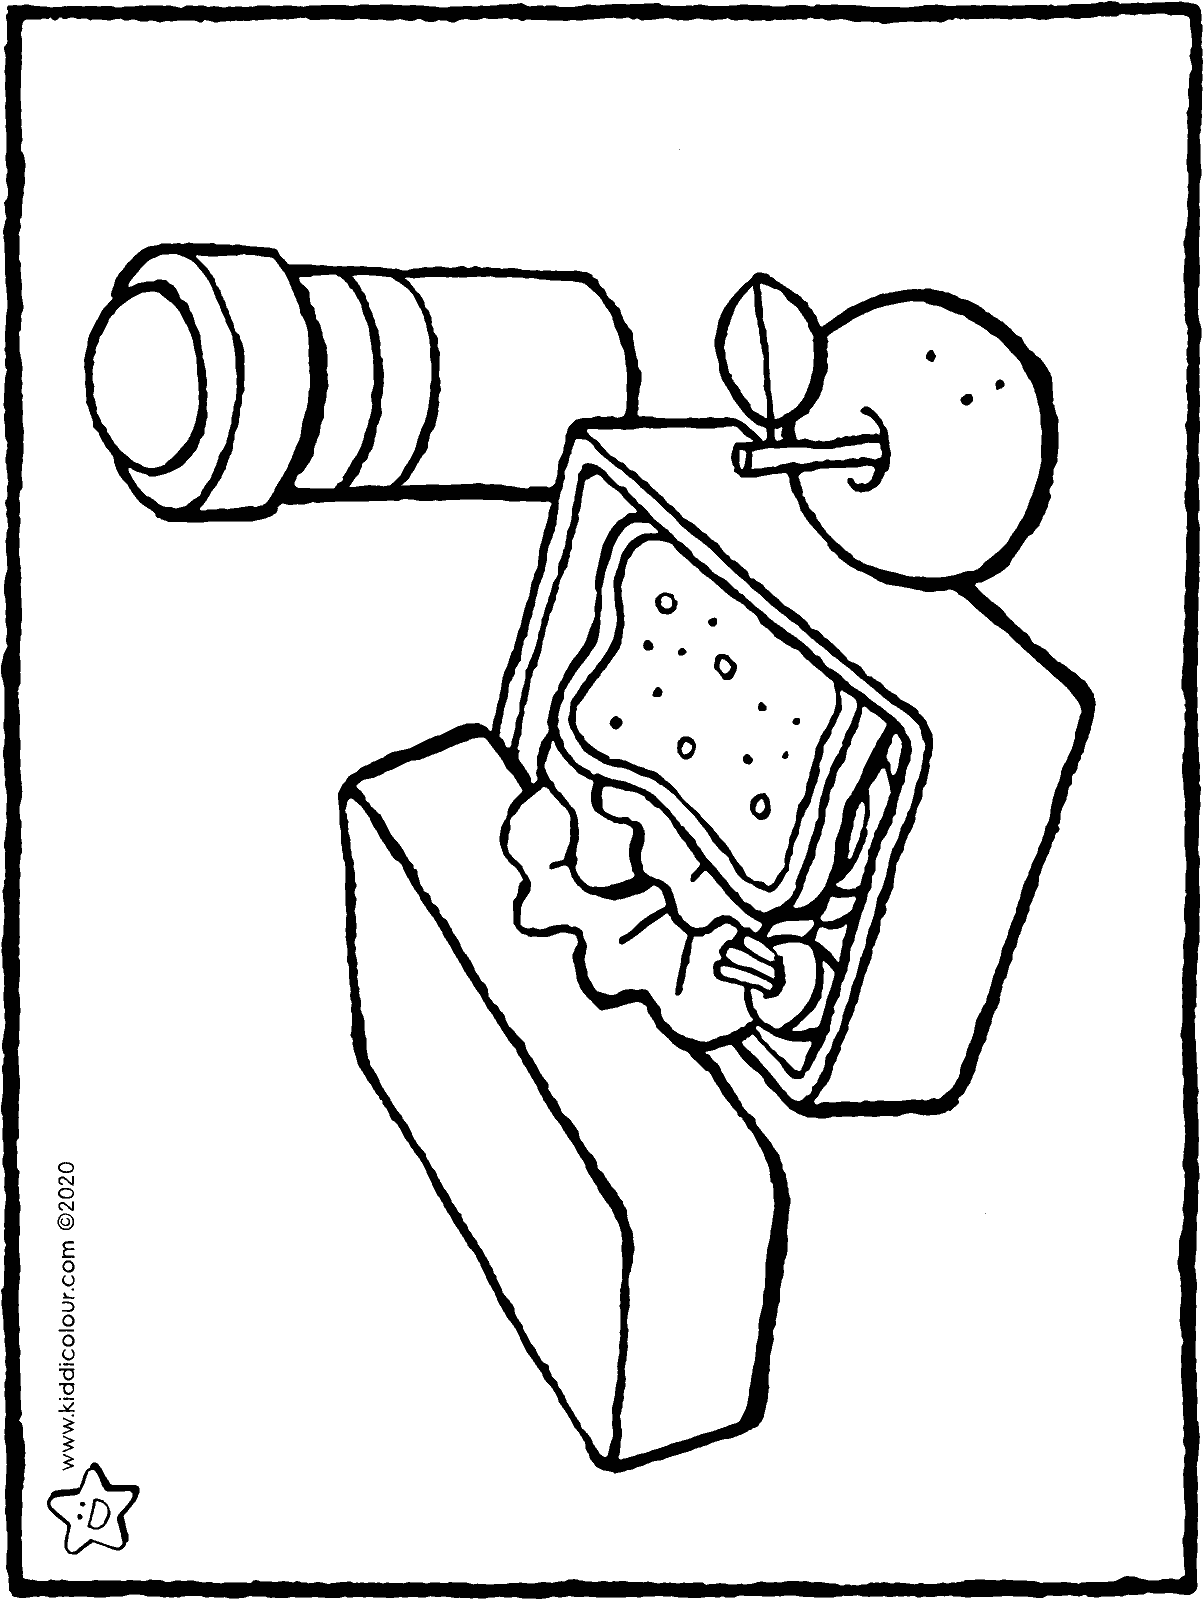 lunch box colouring page drawing picture 01H